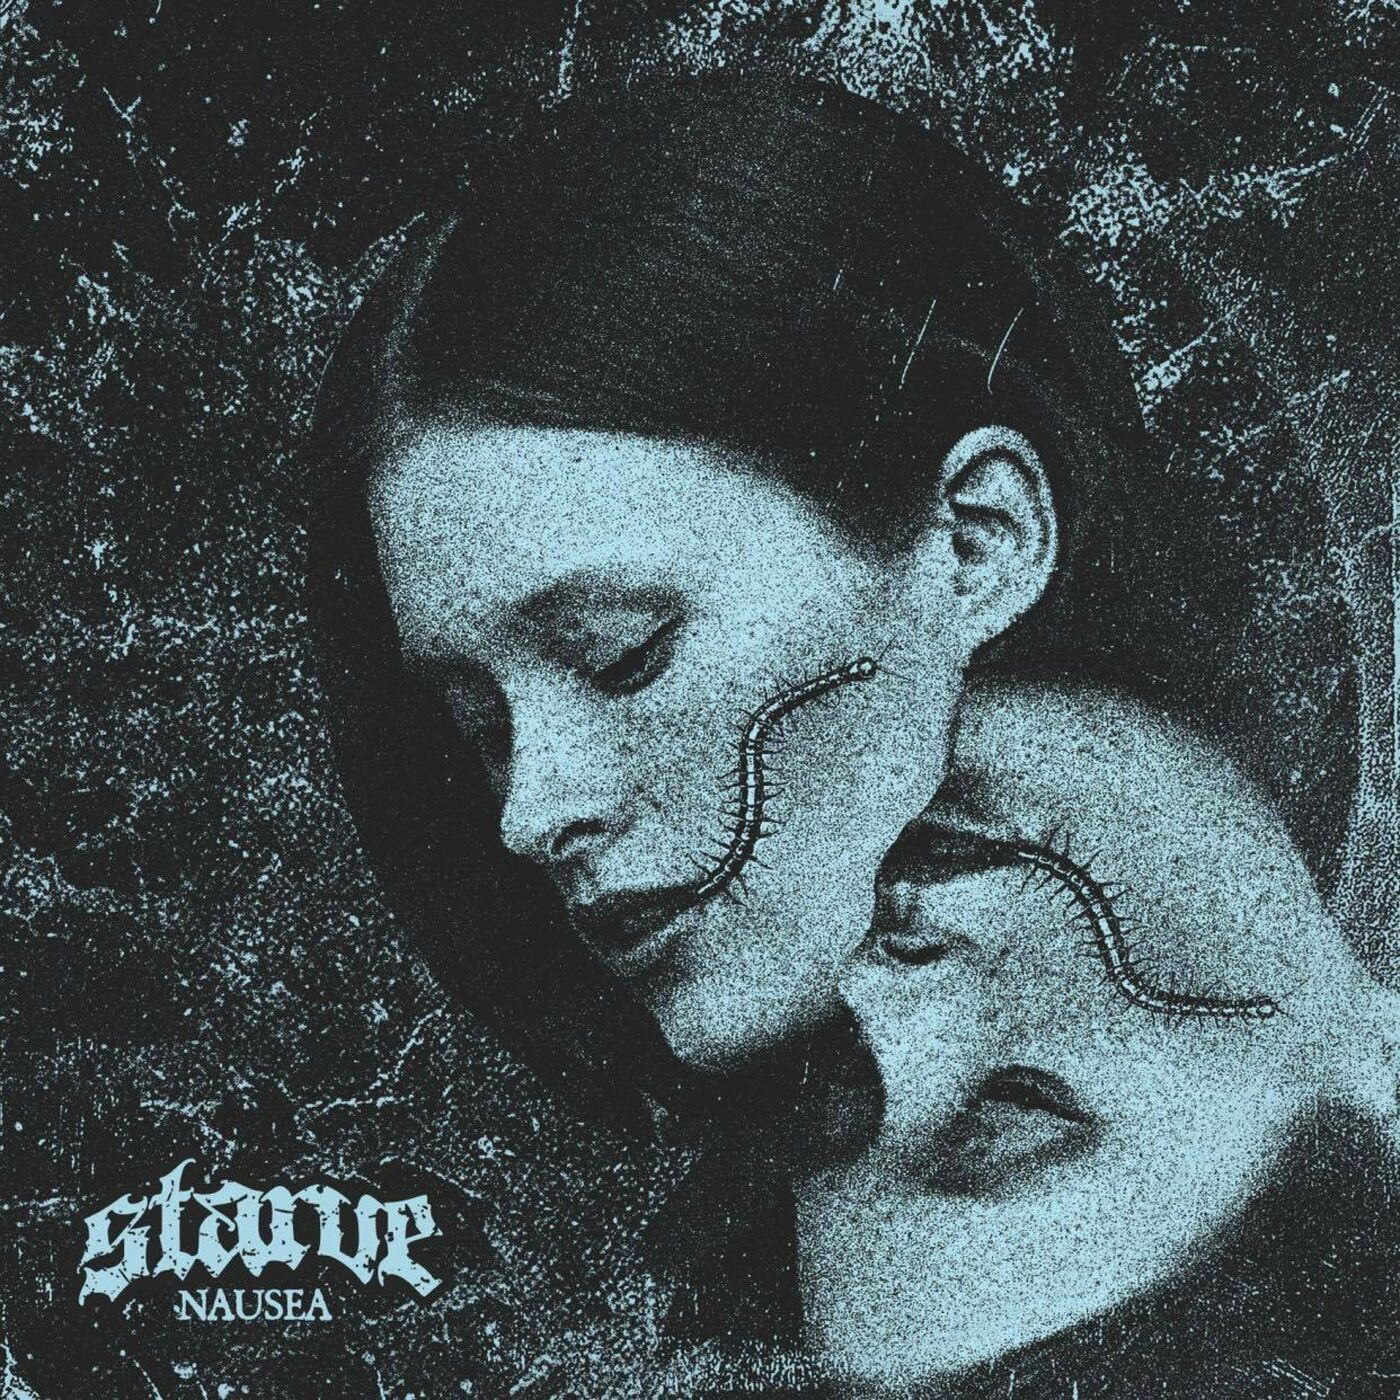 Starve - (On Account Of My Emptiness) [single] (2021)